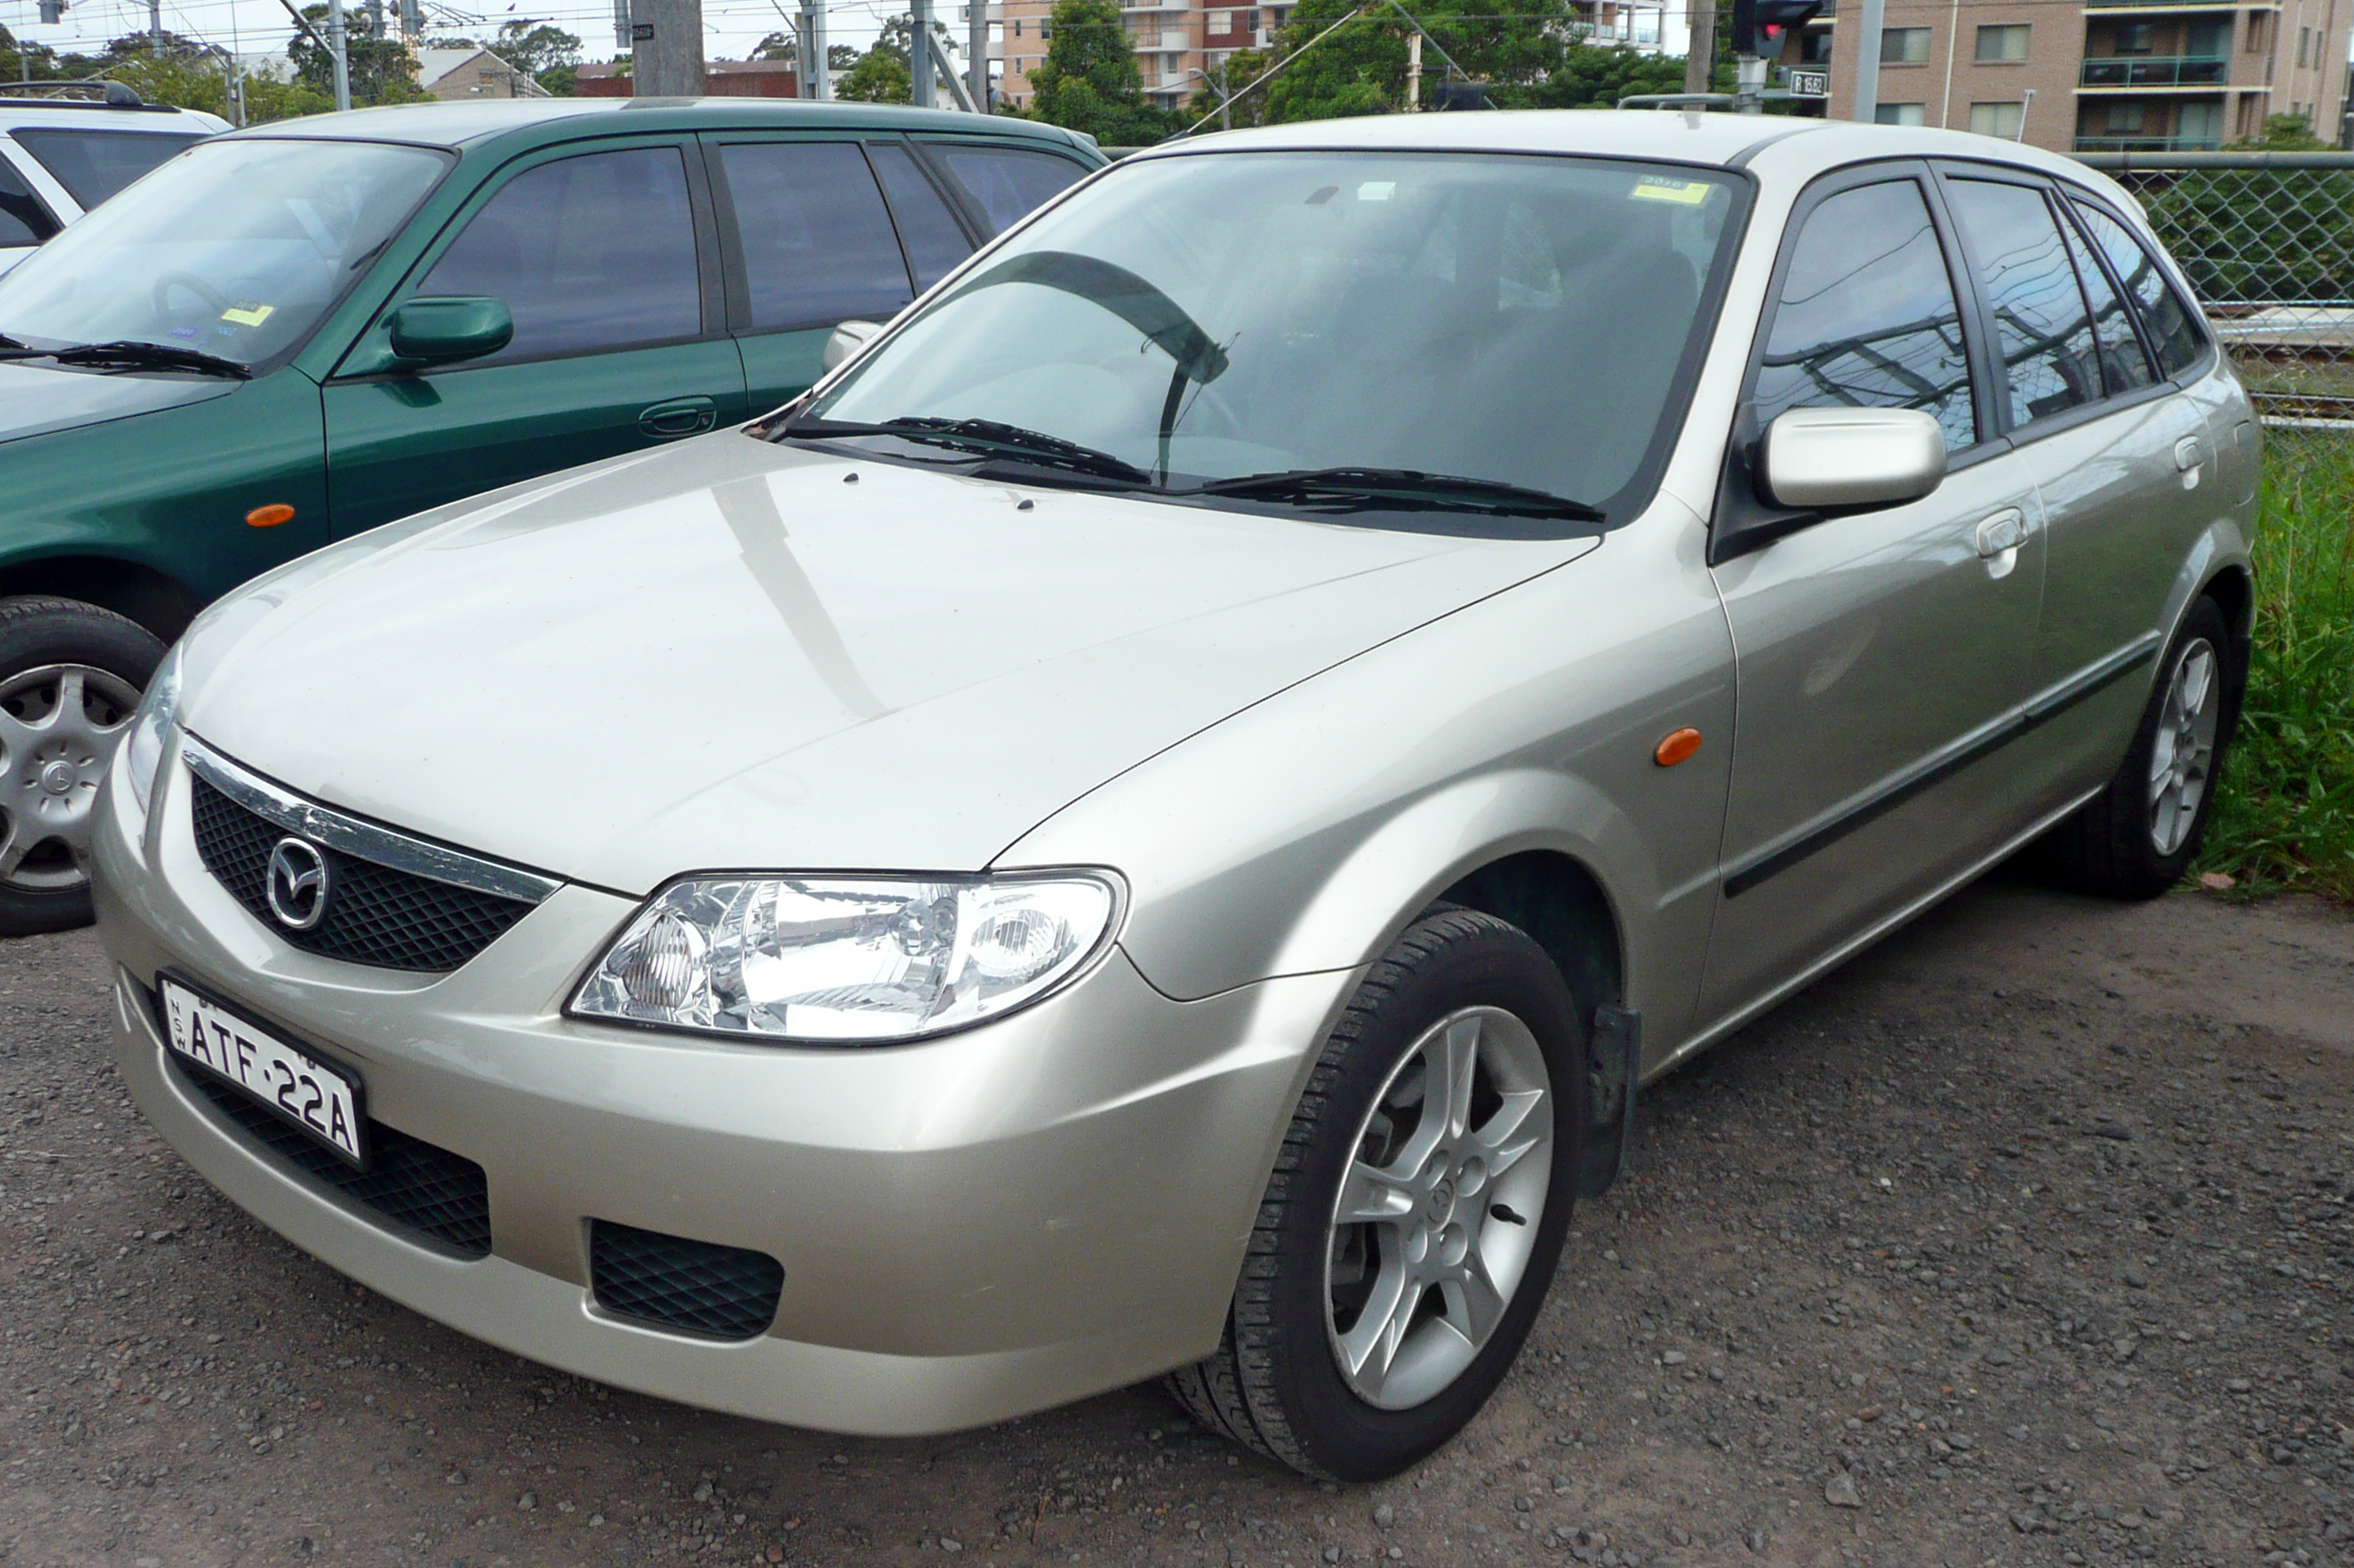 file 2003 mazda 323 bj ii astina shades 5 door hatchback wikimedia commons